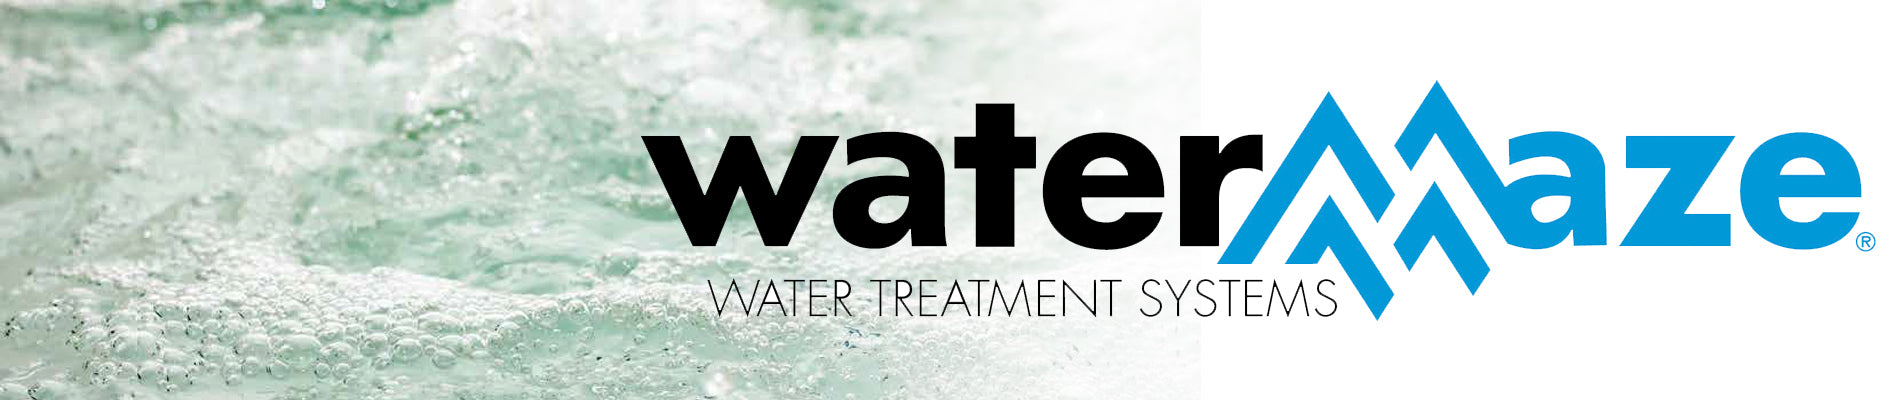 Watermaze Treatment Systems